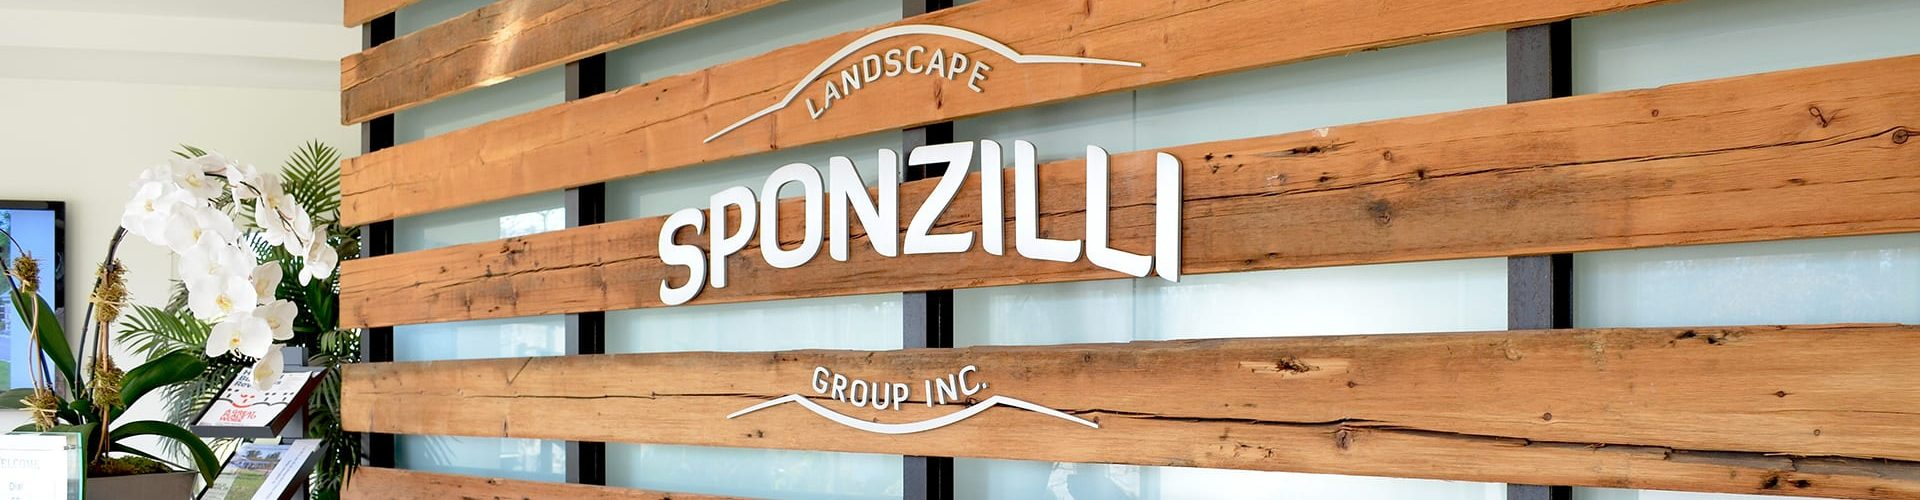 Sponzilli Landscape Group Headquarters